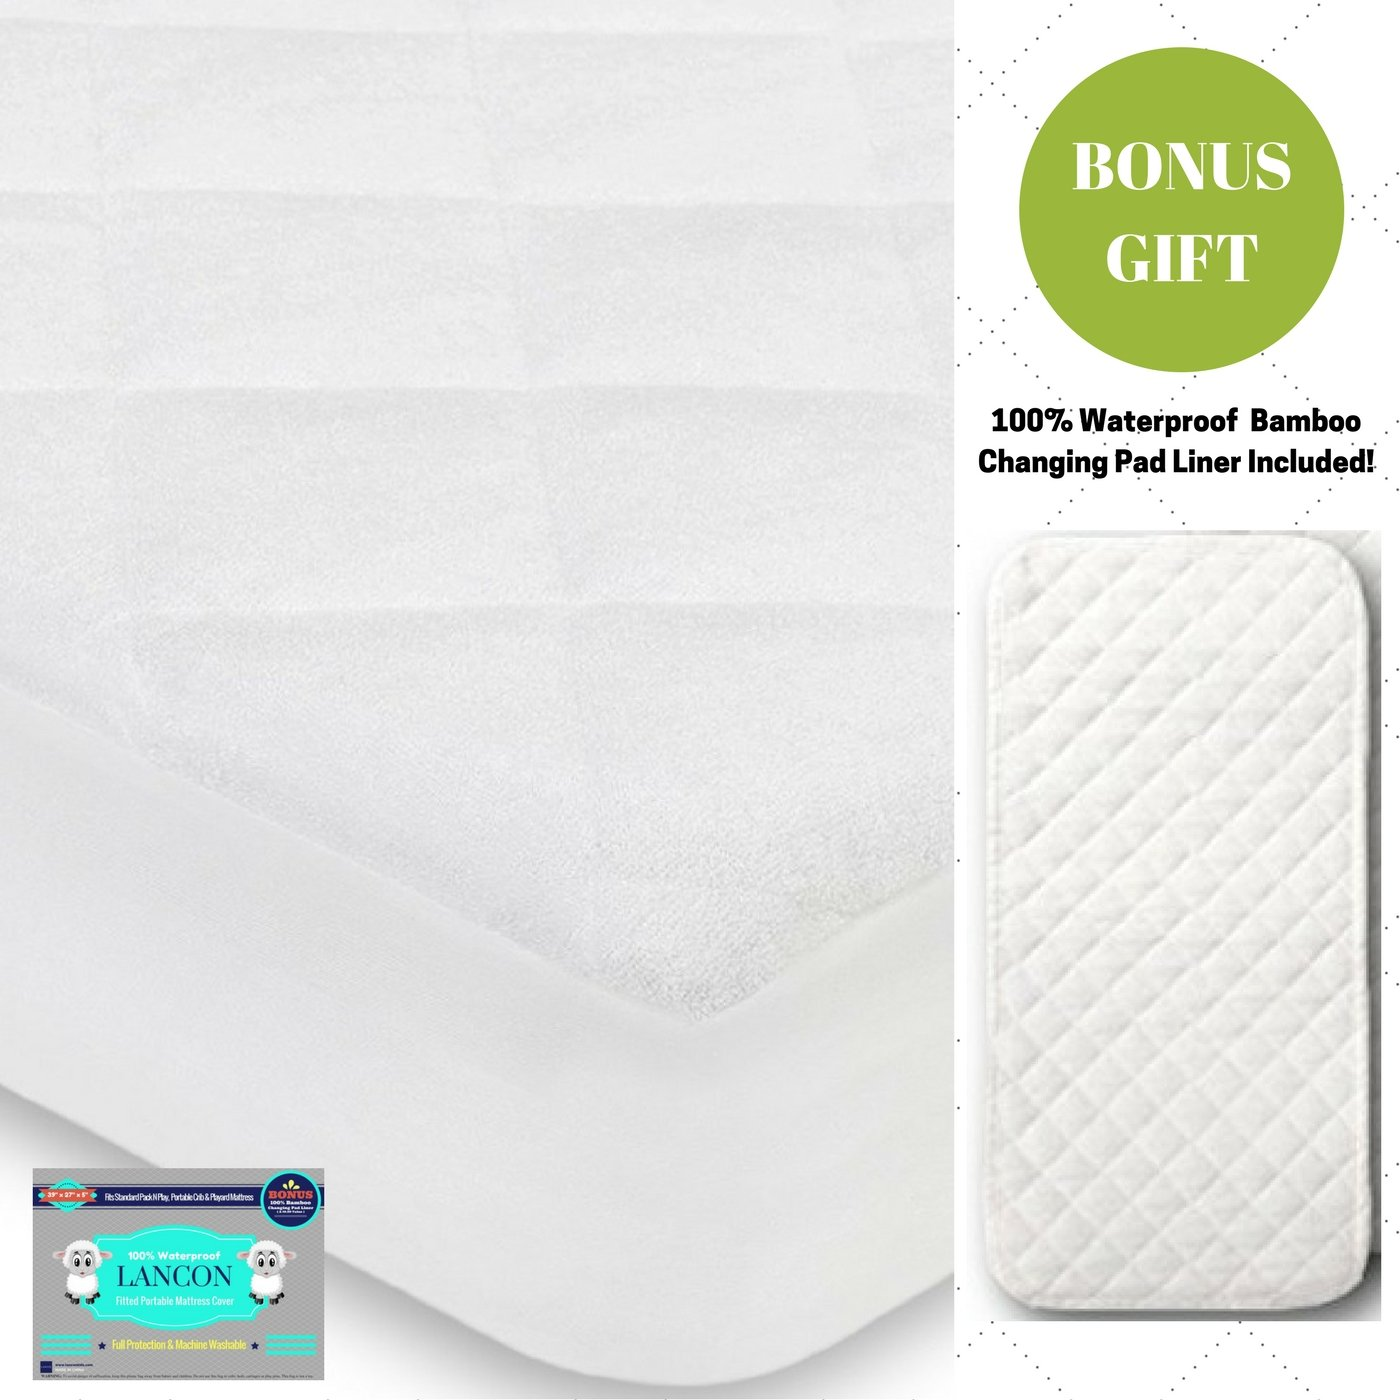 Organic Crib Mattress Pad Cover + BONUS Changing Pad Liner Included! – Waterproof, Hypoallergenic, Fitted with Ultra Soft Bamboo Quilted Top - Fits ALL Standard Crib Mattresses